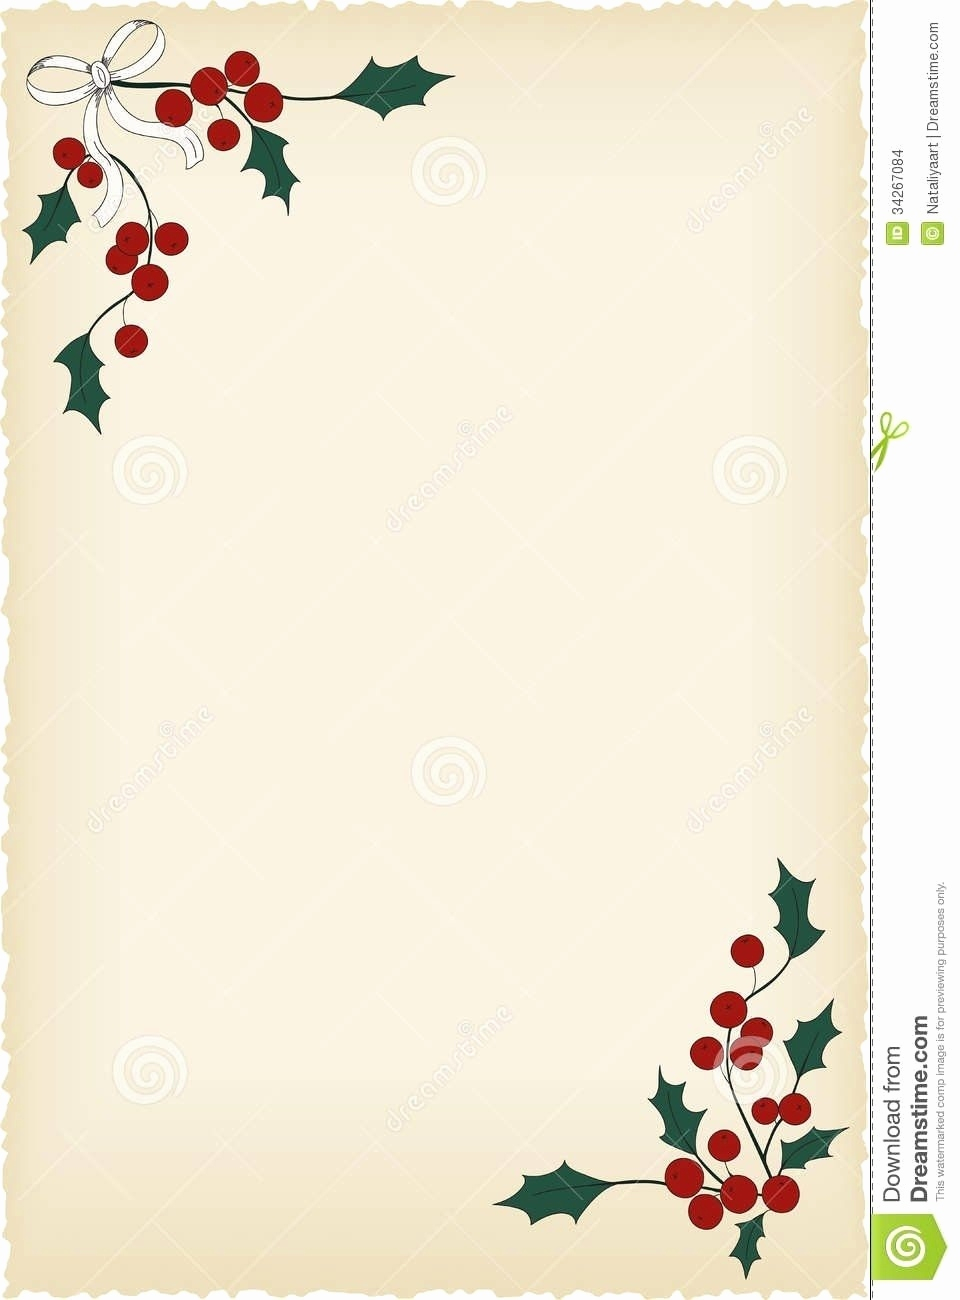 Christmas Letter Background Template - Christmas Letter Backgrounds for Free Acurnamedia